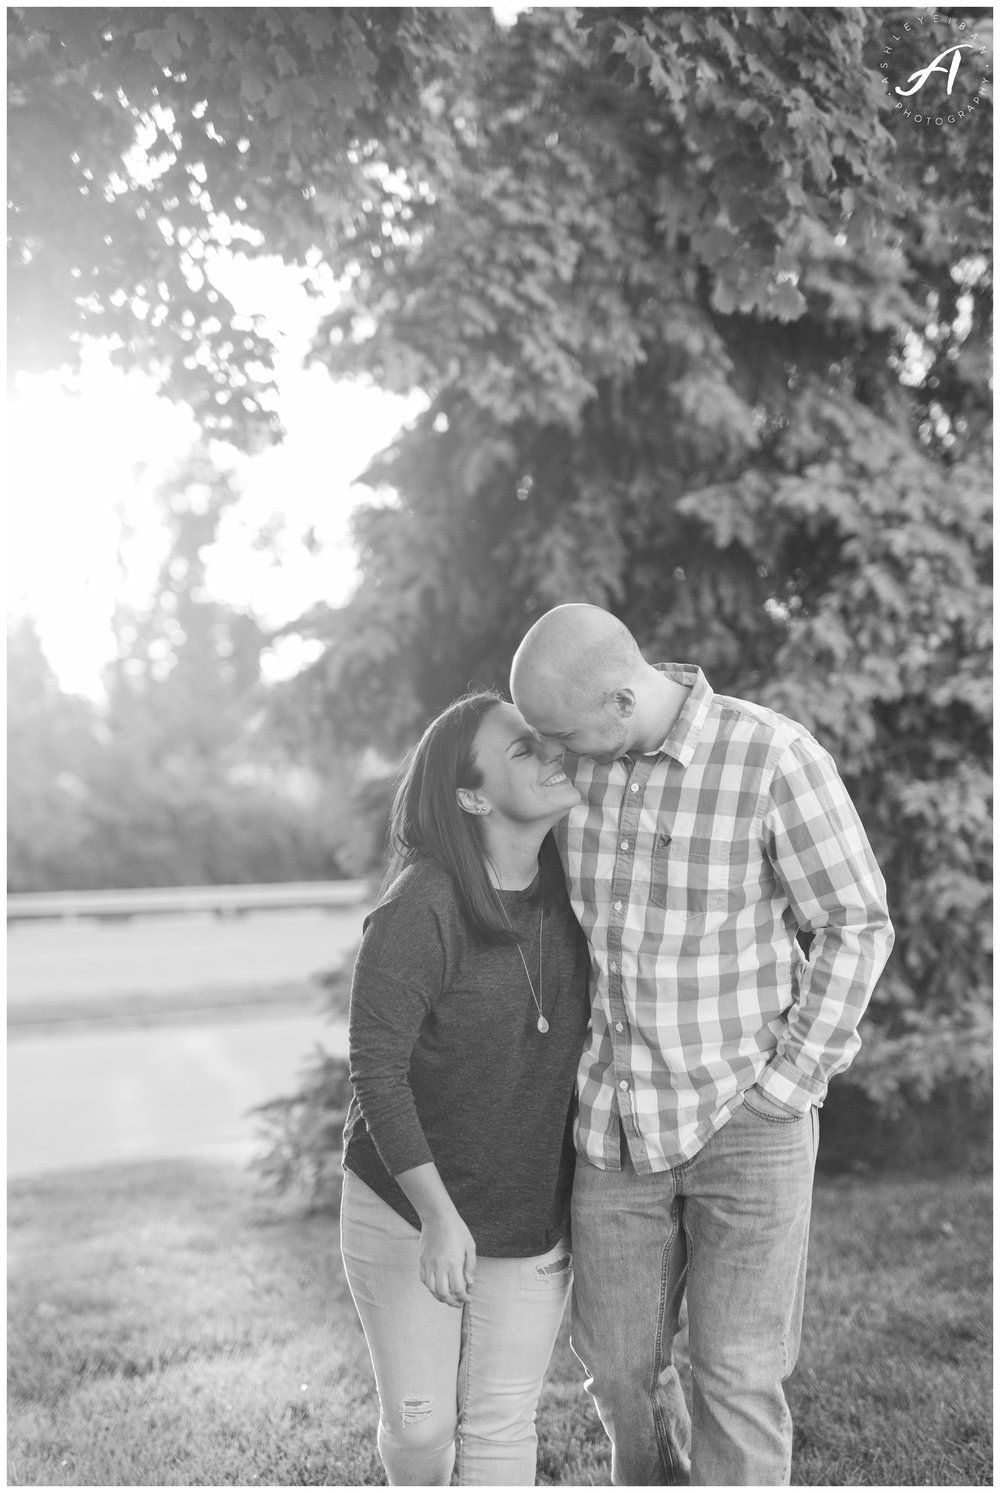 Roanoke and Lynchburg Virginia Wedding and Engagement Photographer || Ashley Eiban Photography || www.ashleyeiban.com